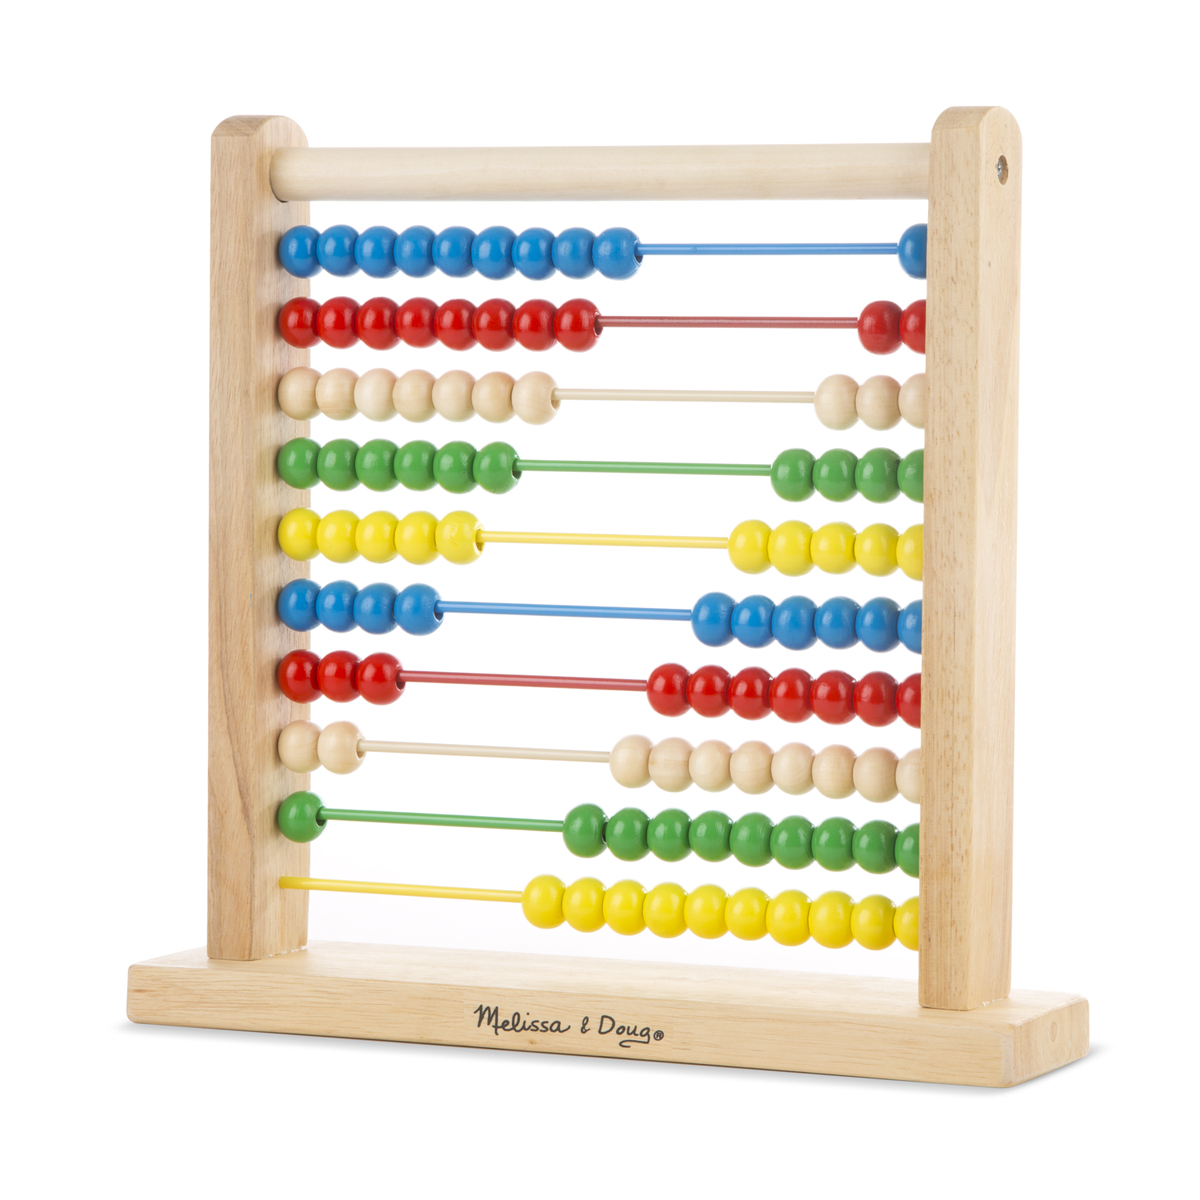 Melissa & Doug Abacus Classic Wooden Toy 493